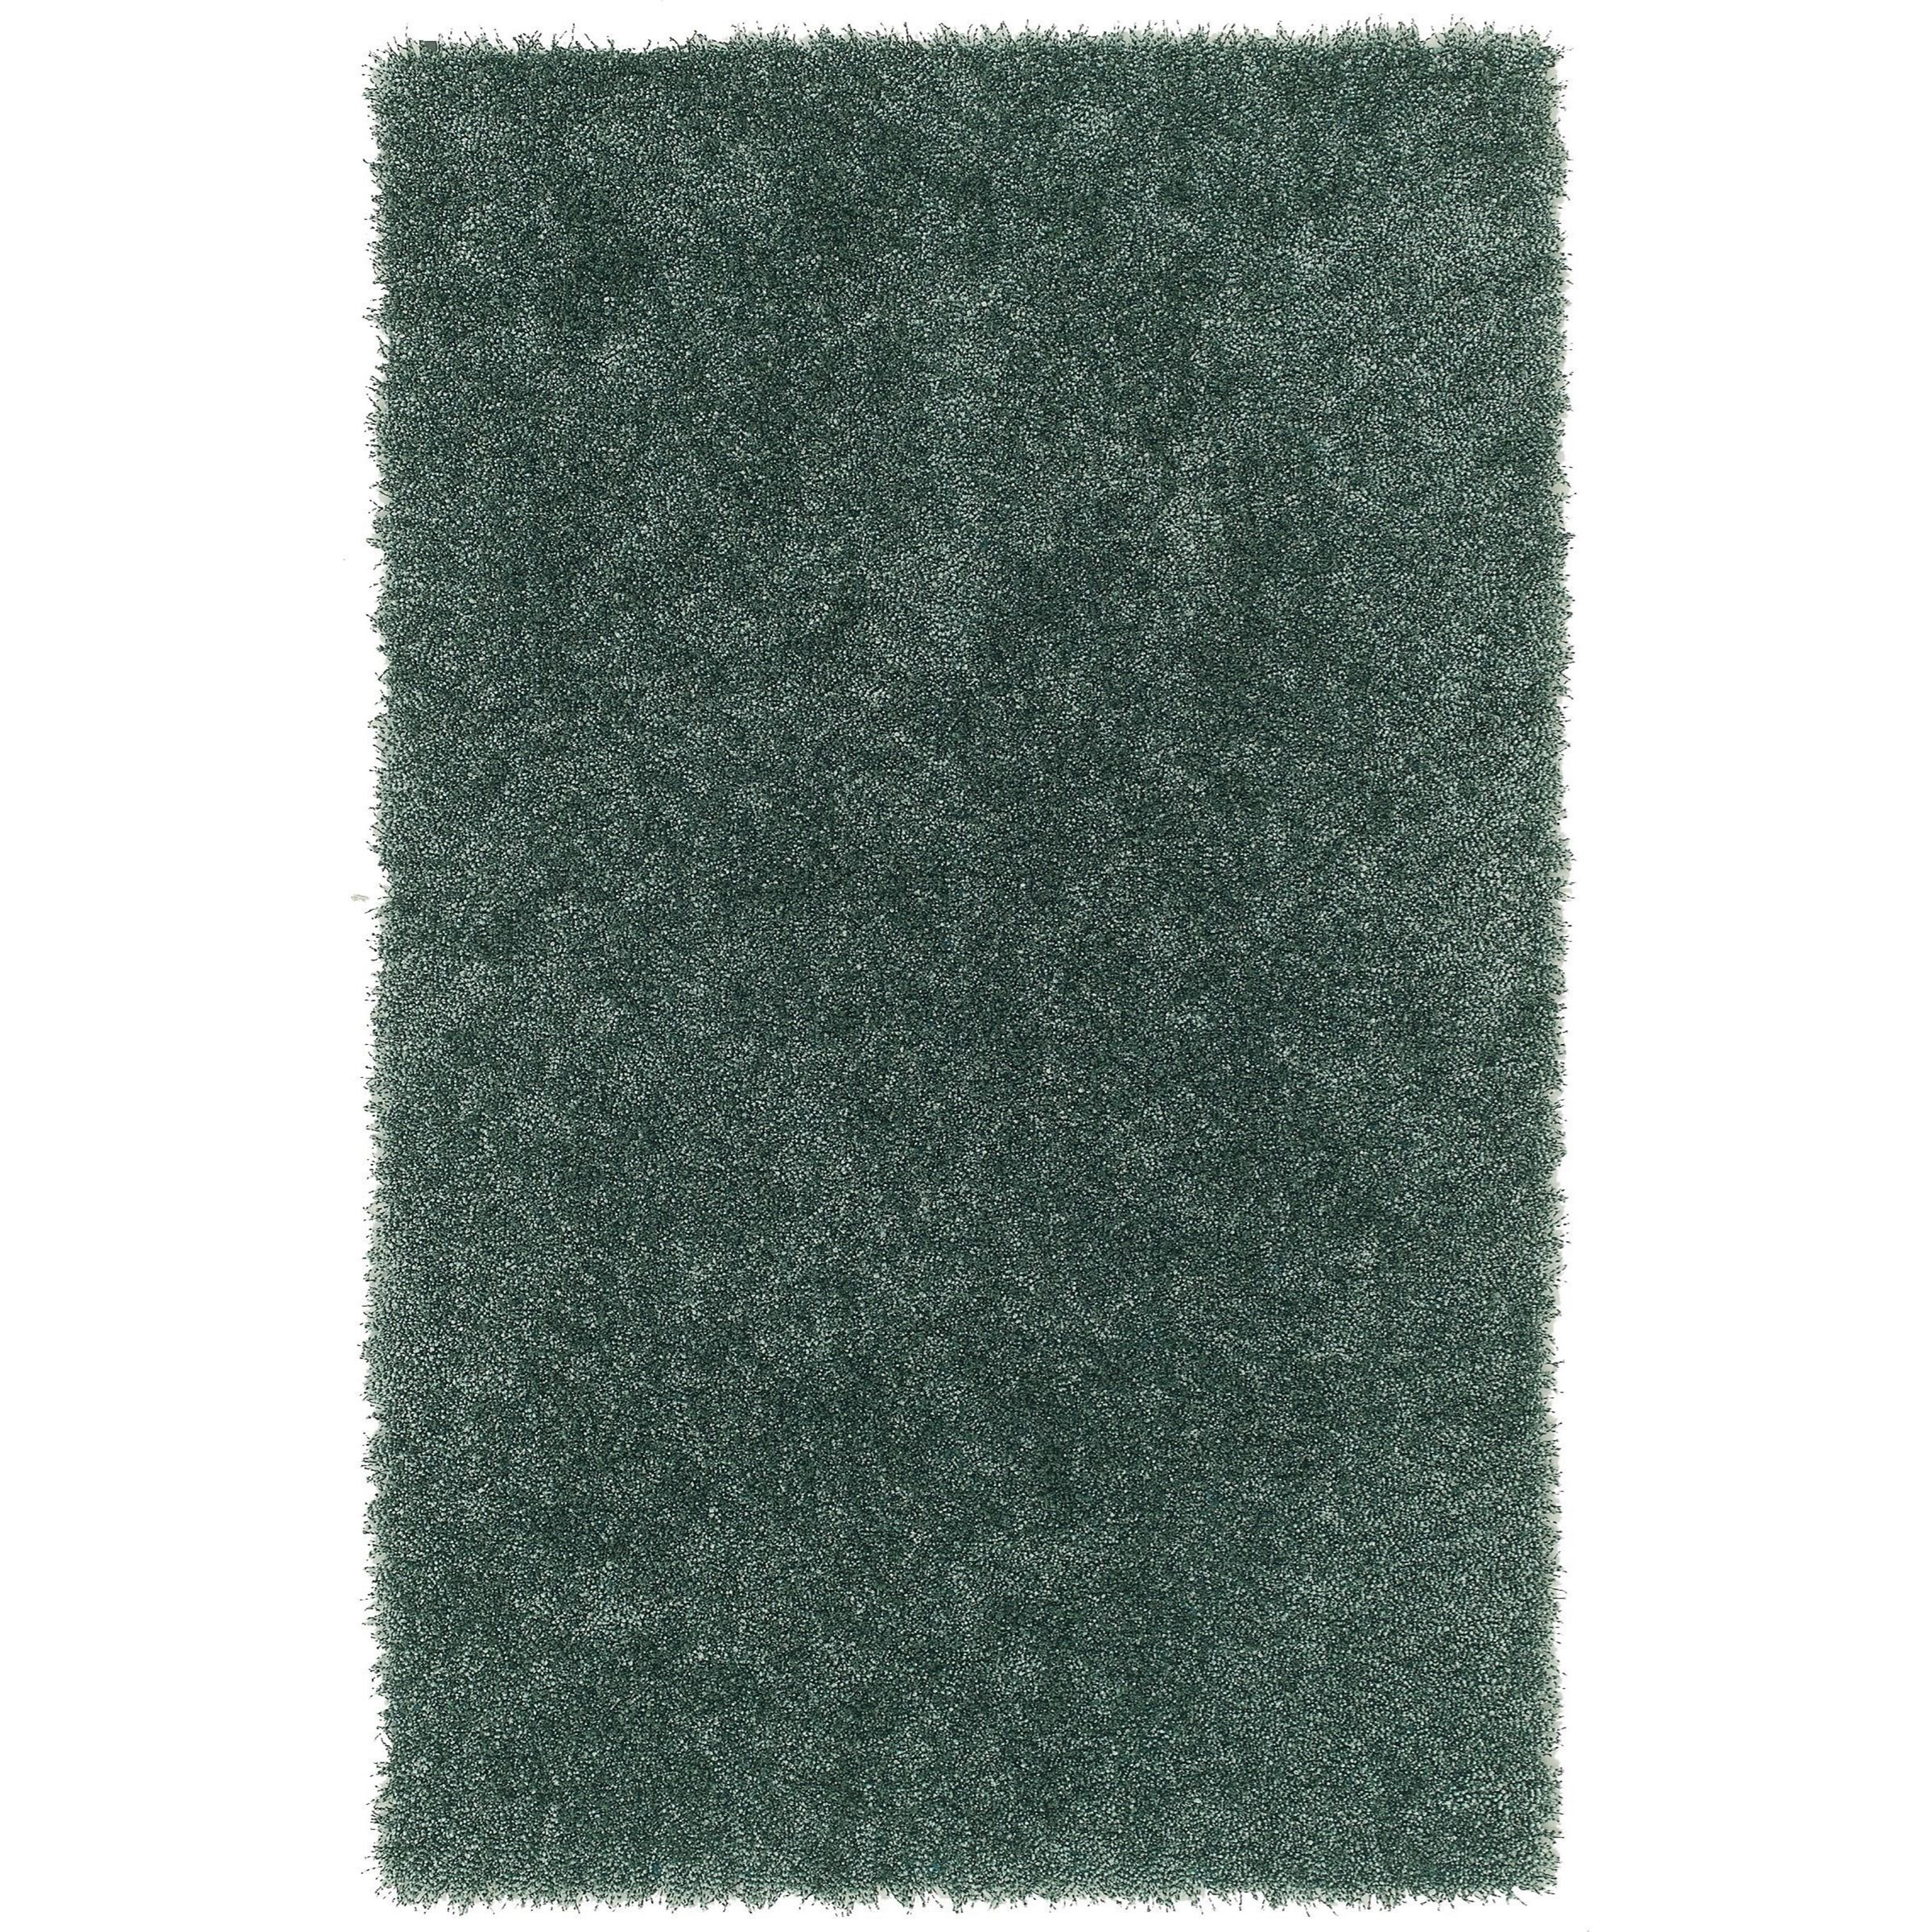 Dalyn Belize Spa 9'X13' Rug - Item Number: BZ100SP9X13